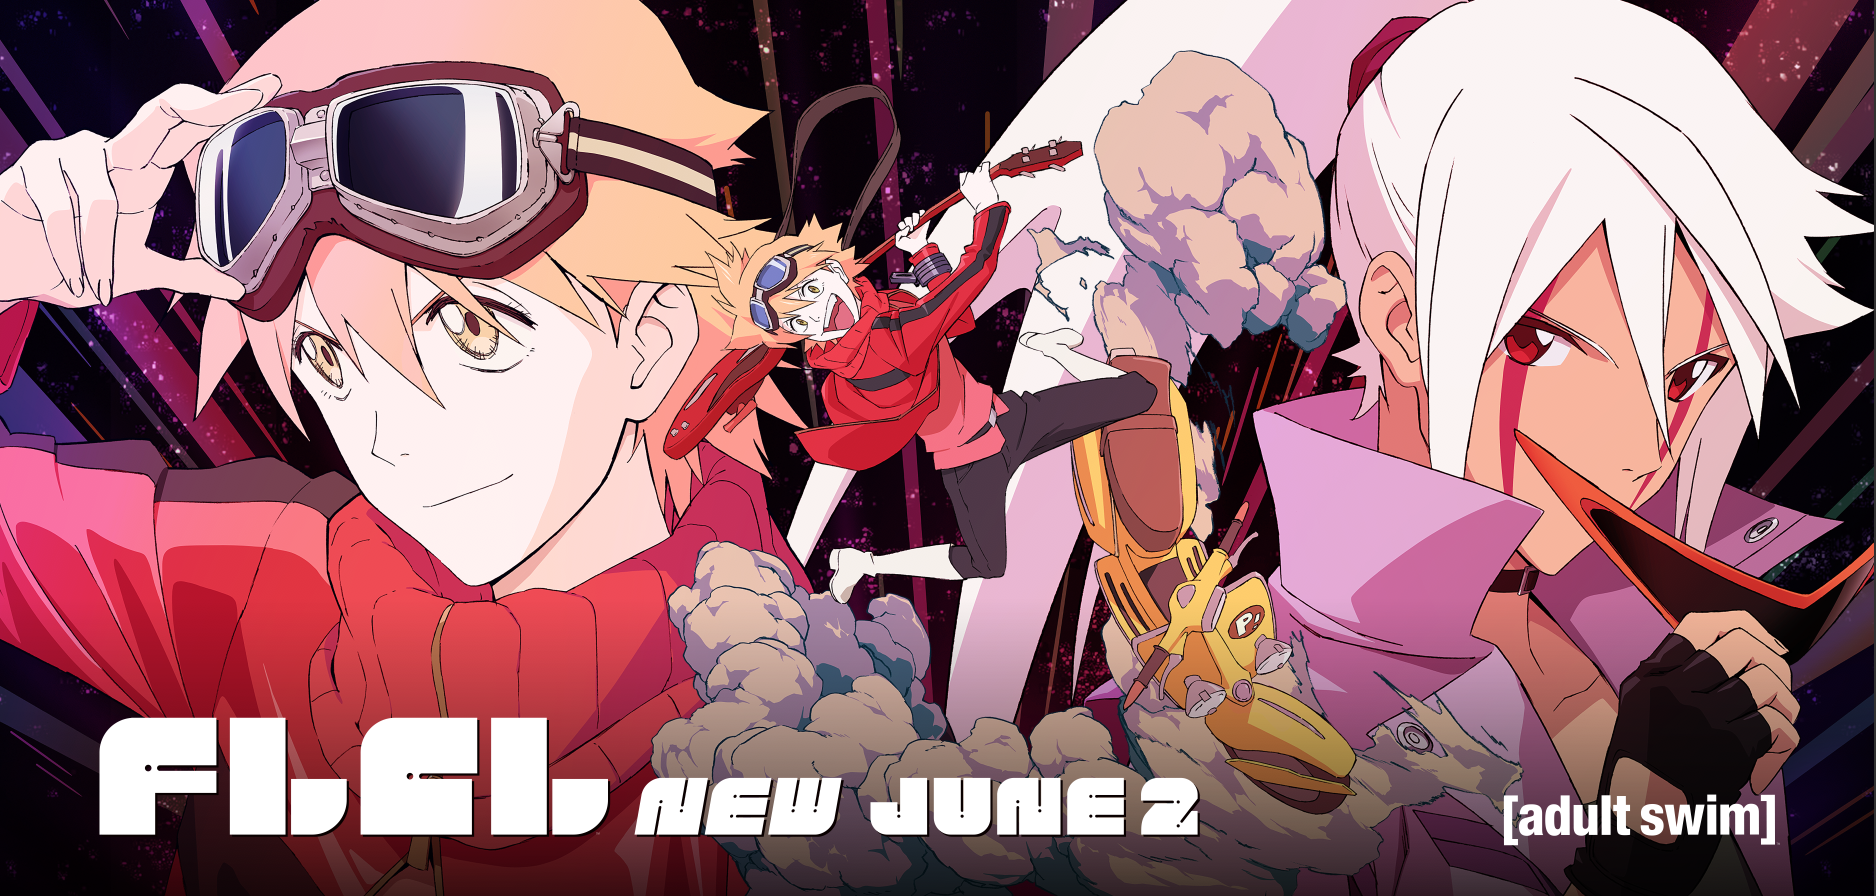 Press Release: New Seasons of Anime Hit Series FLCL Crash Land This Summer on Toonami